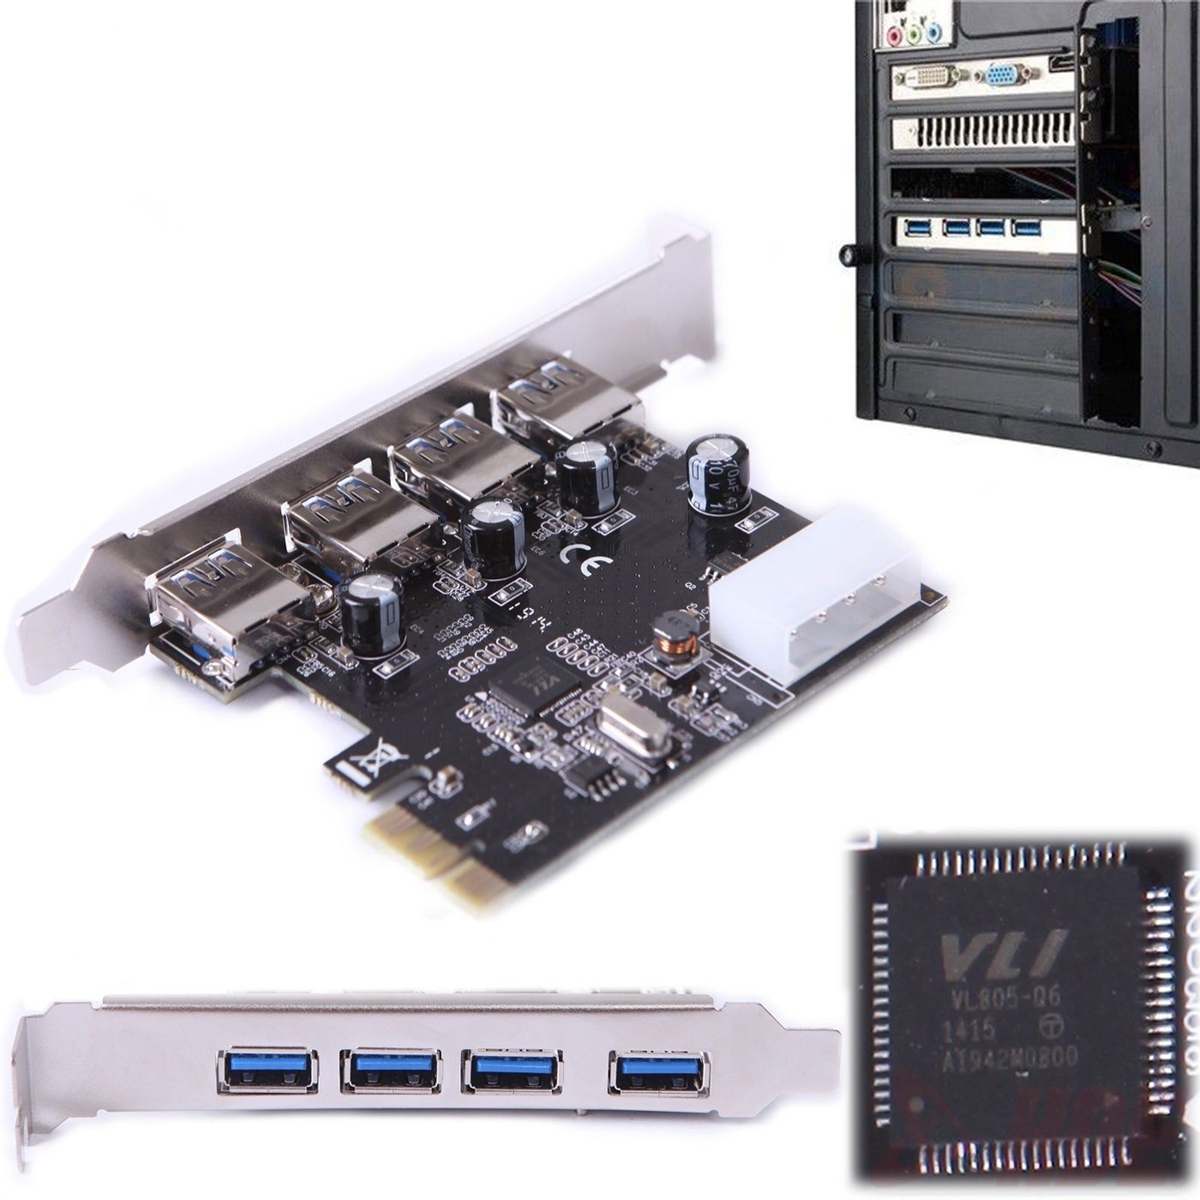 4 Port PCI Express PCIe Super 4 Speed USB 3.0 Controller Card Adapter For PC